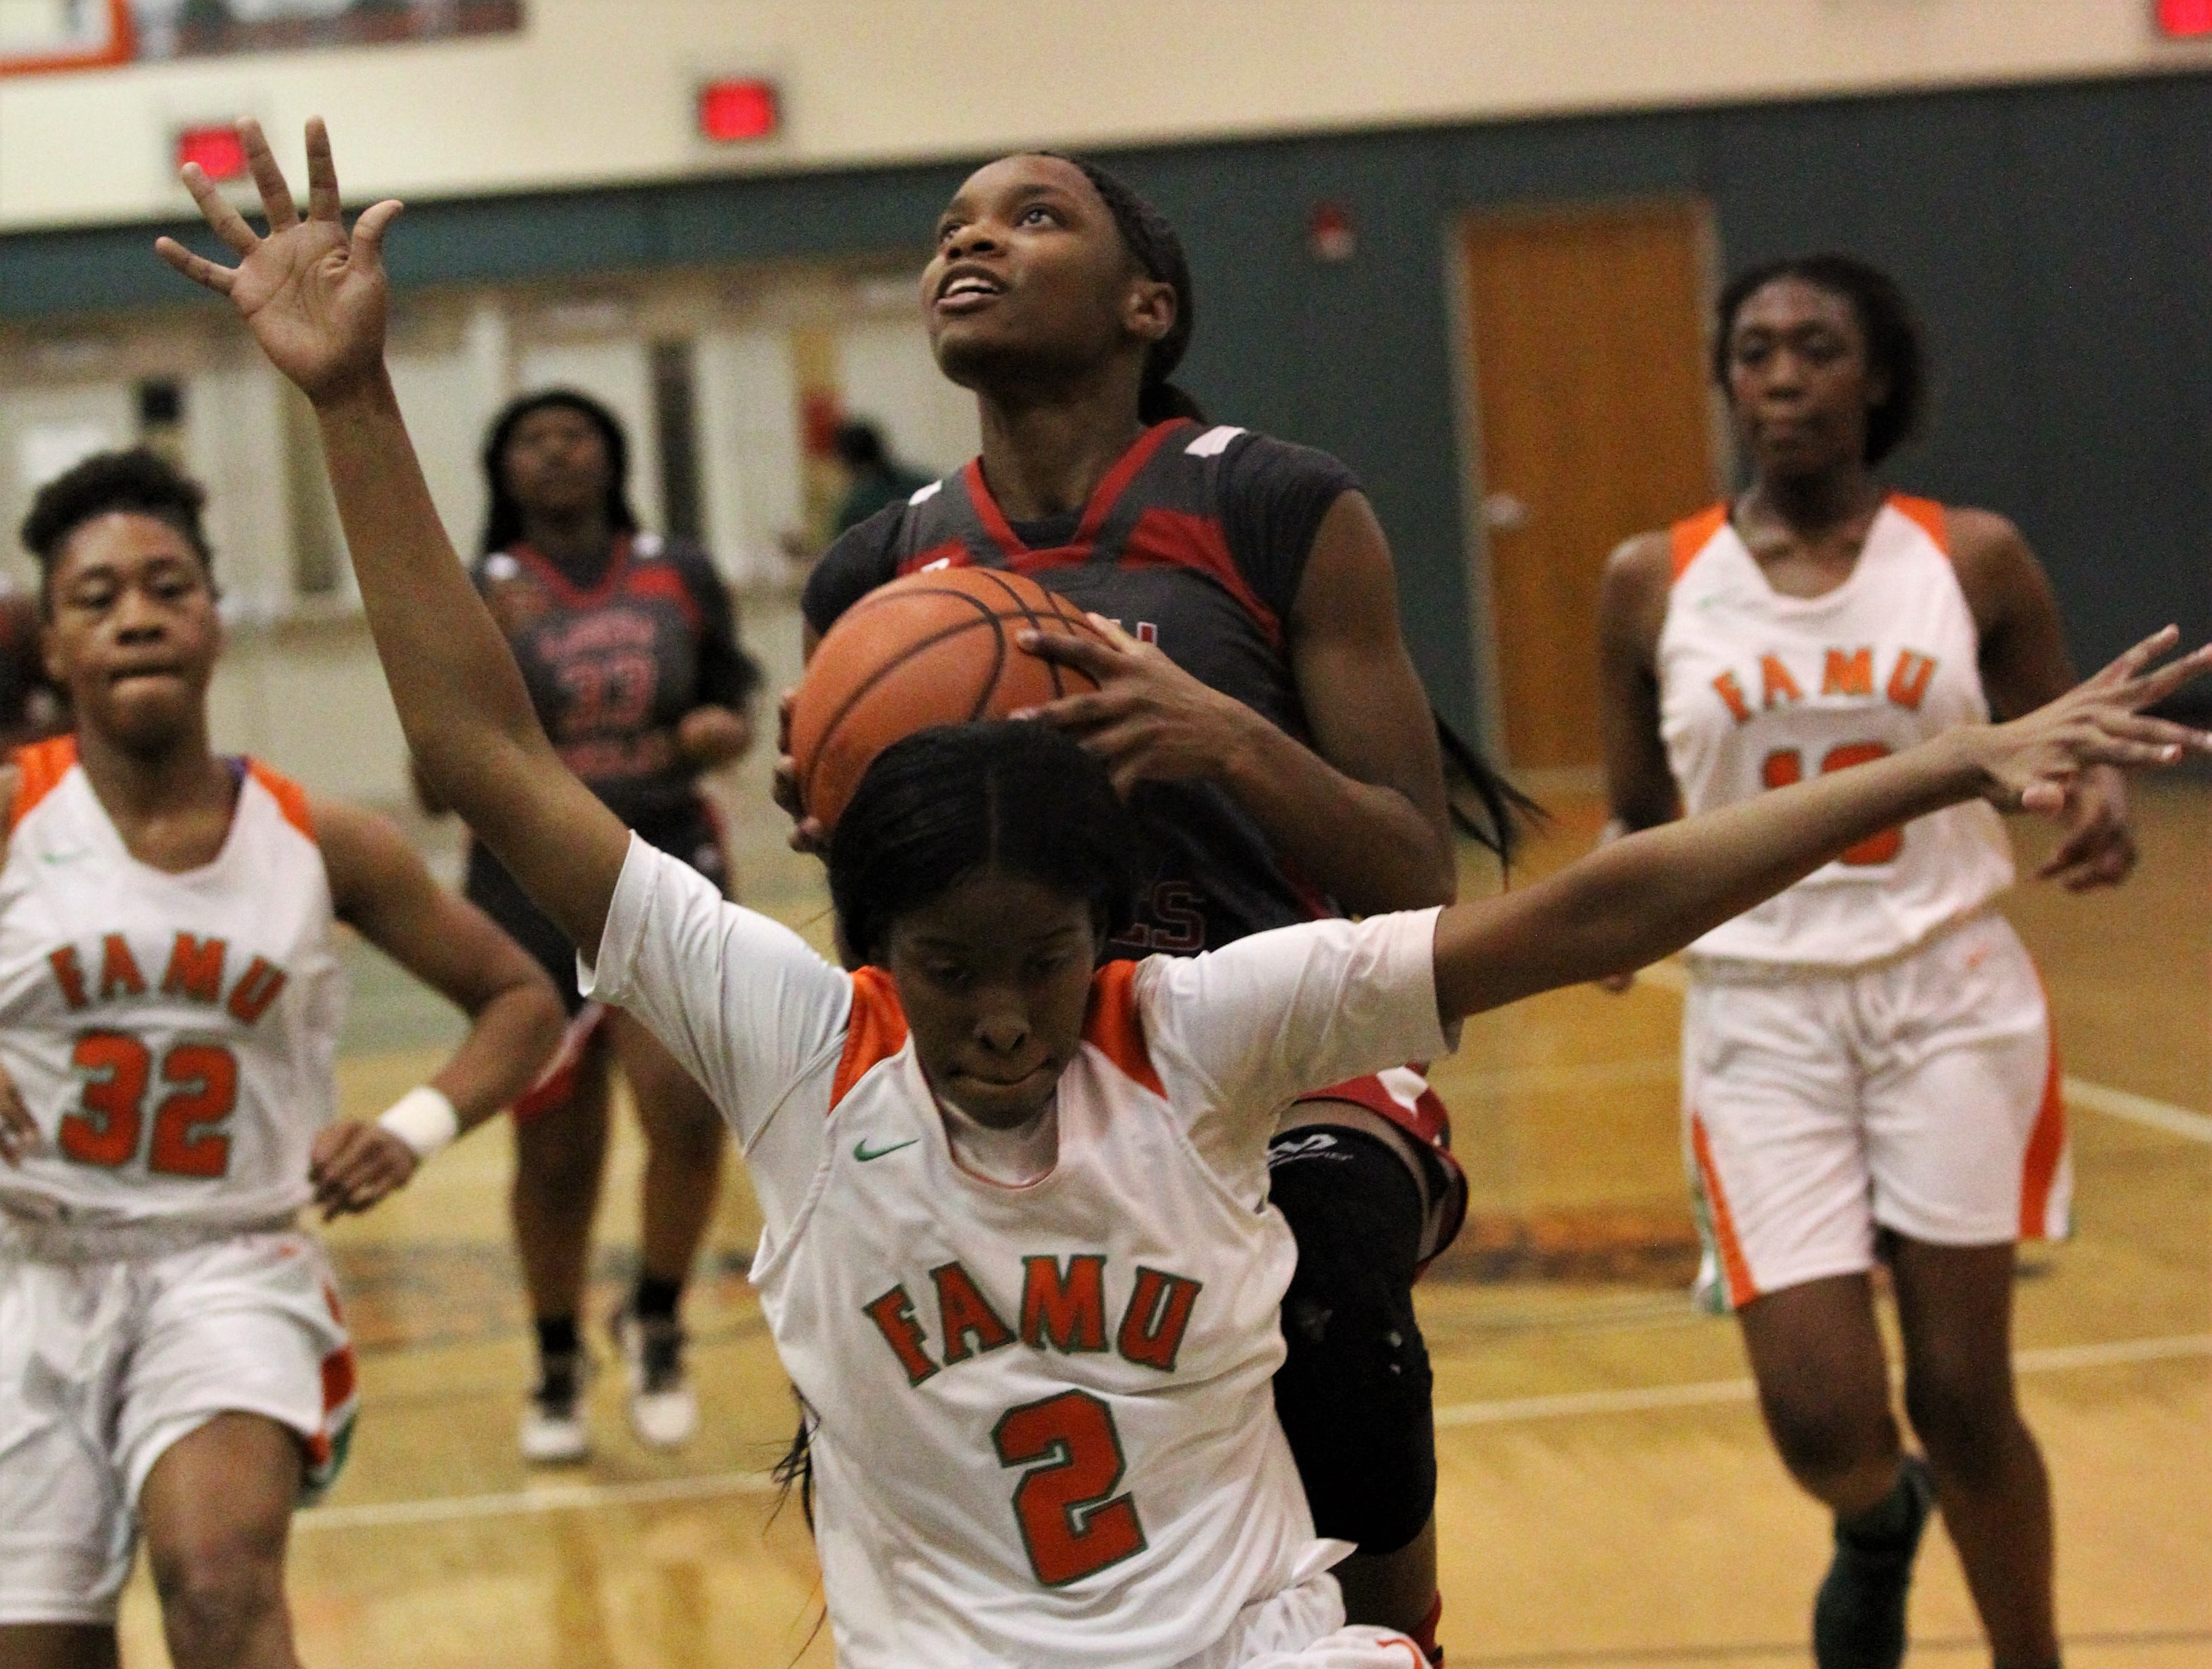 NFC junior Alexsis Thomas goes up for a layup on the back of FAMU DRS senior Diamond Douglass as FAMU DRS' girls basketball team beat NFC 59-41 for a District 1-3A title on Jan. 7, 2019.